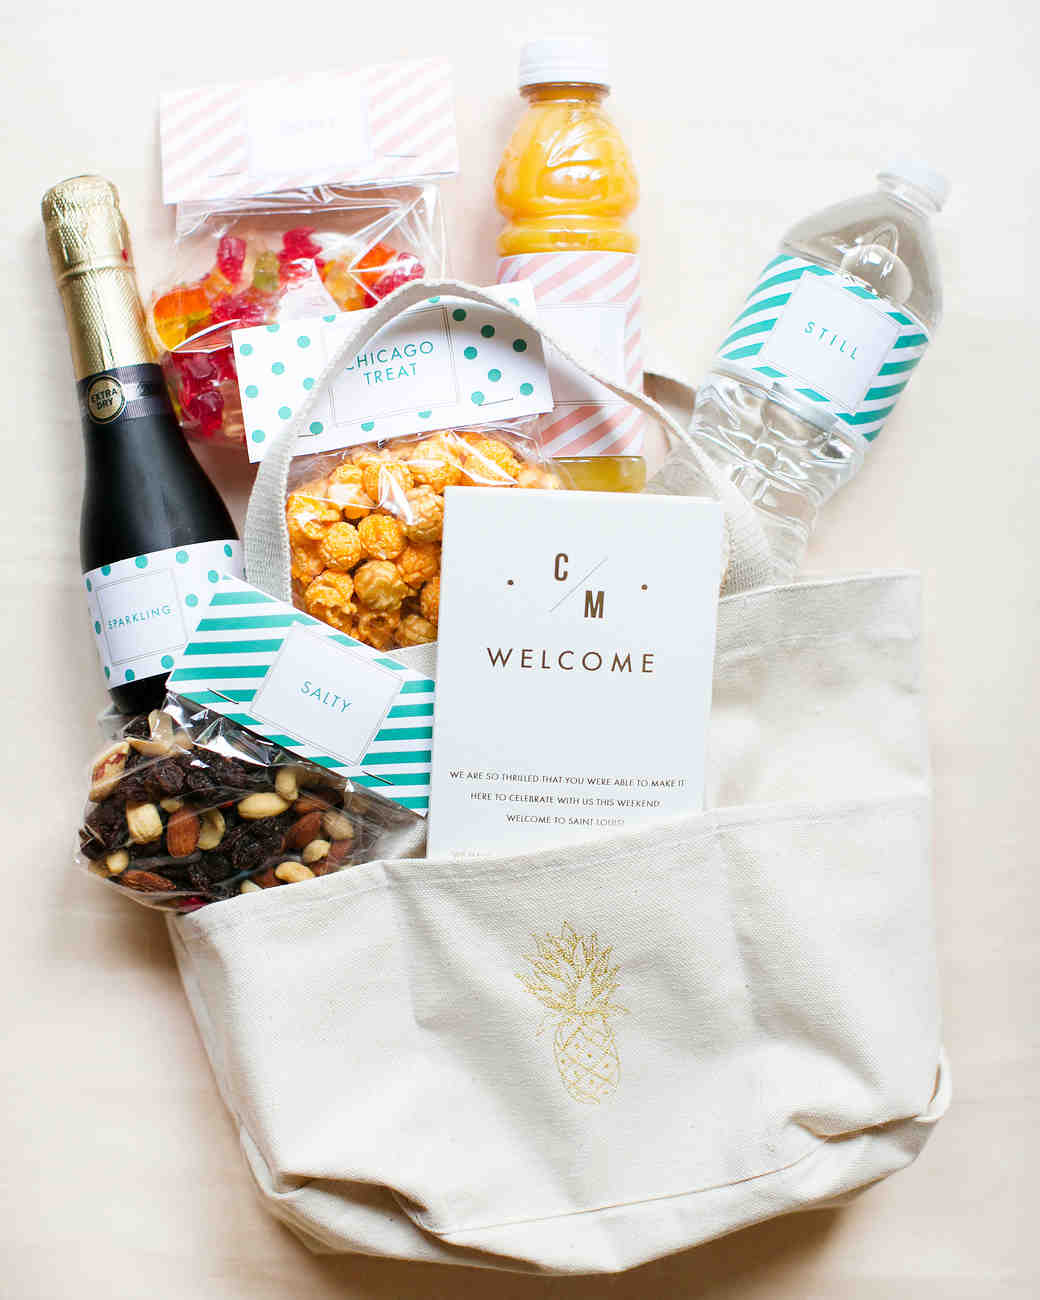 Wedding Welcome Bag Ideas Chicago : 27 Ideas for Including Your Wedding Guests in the Party of a Lifetime ...